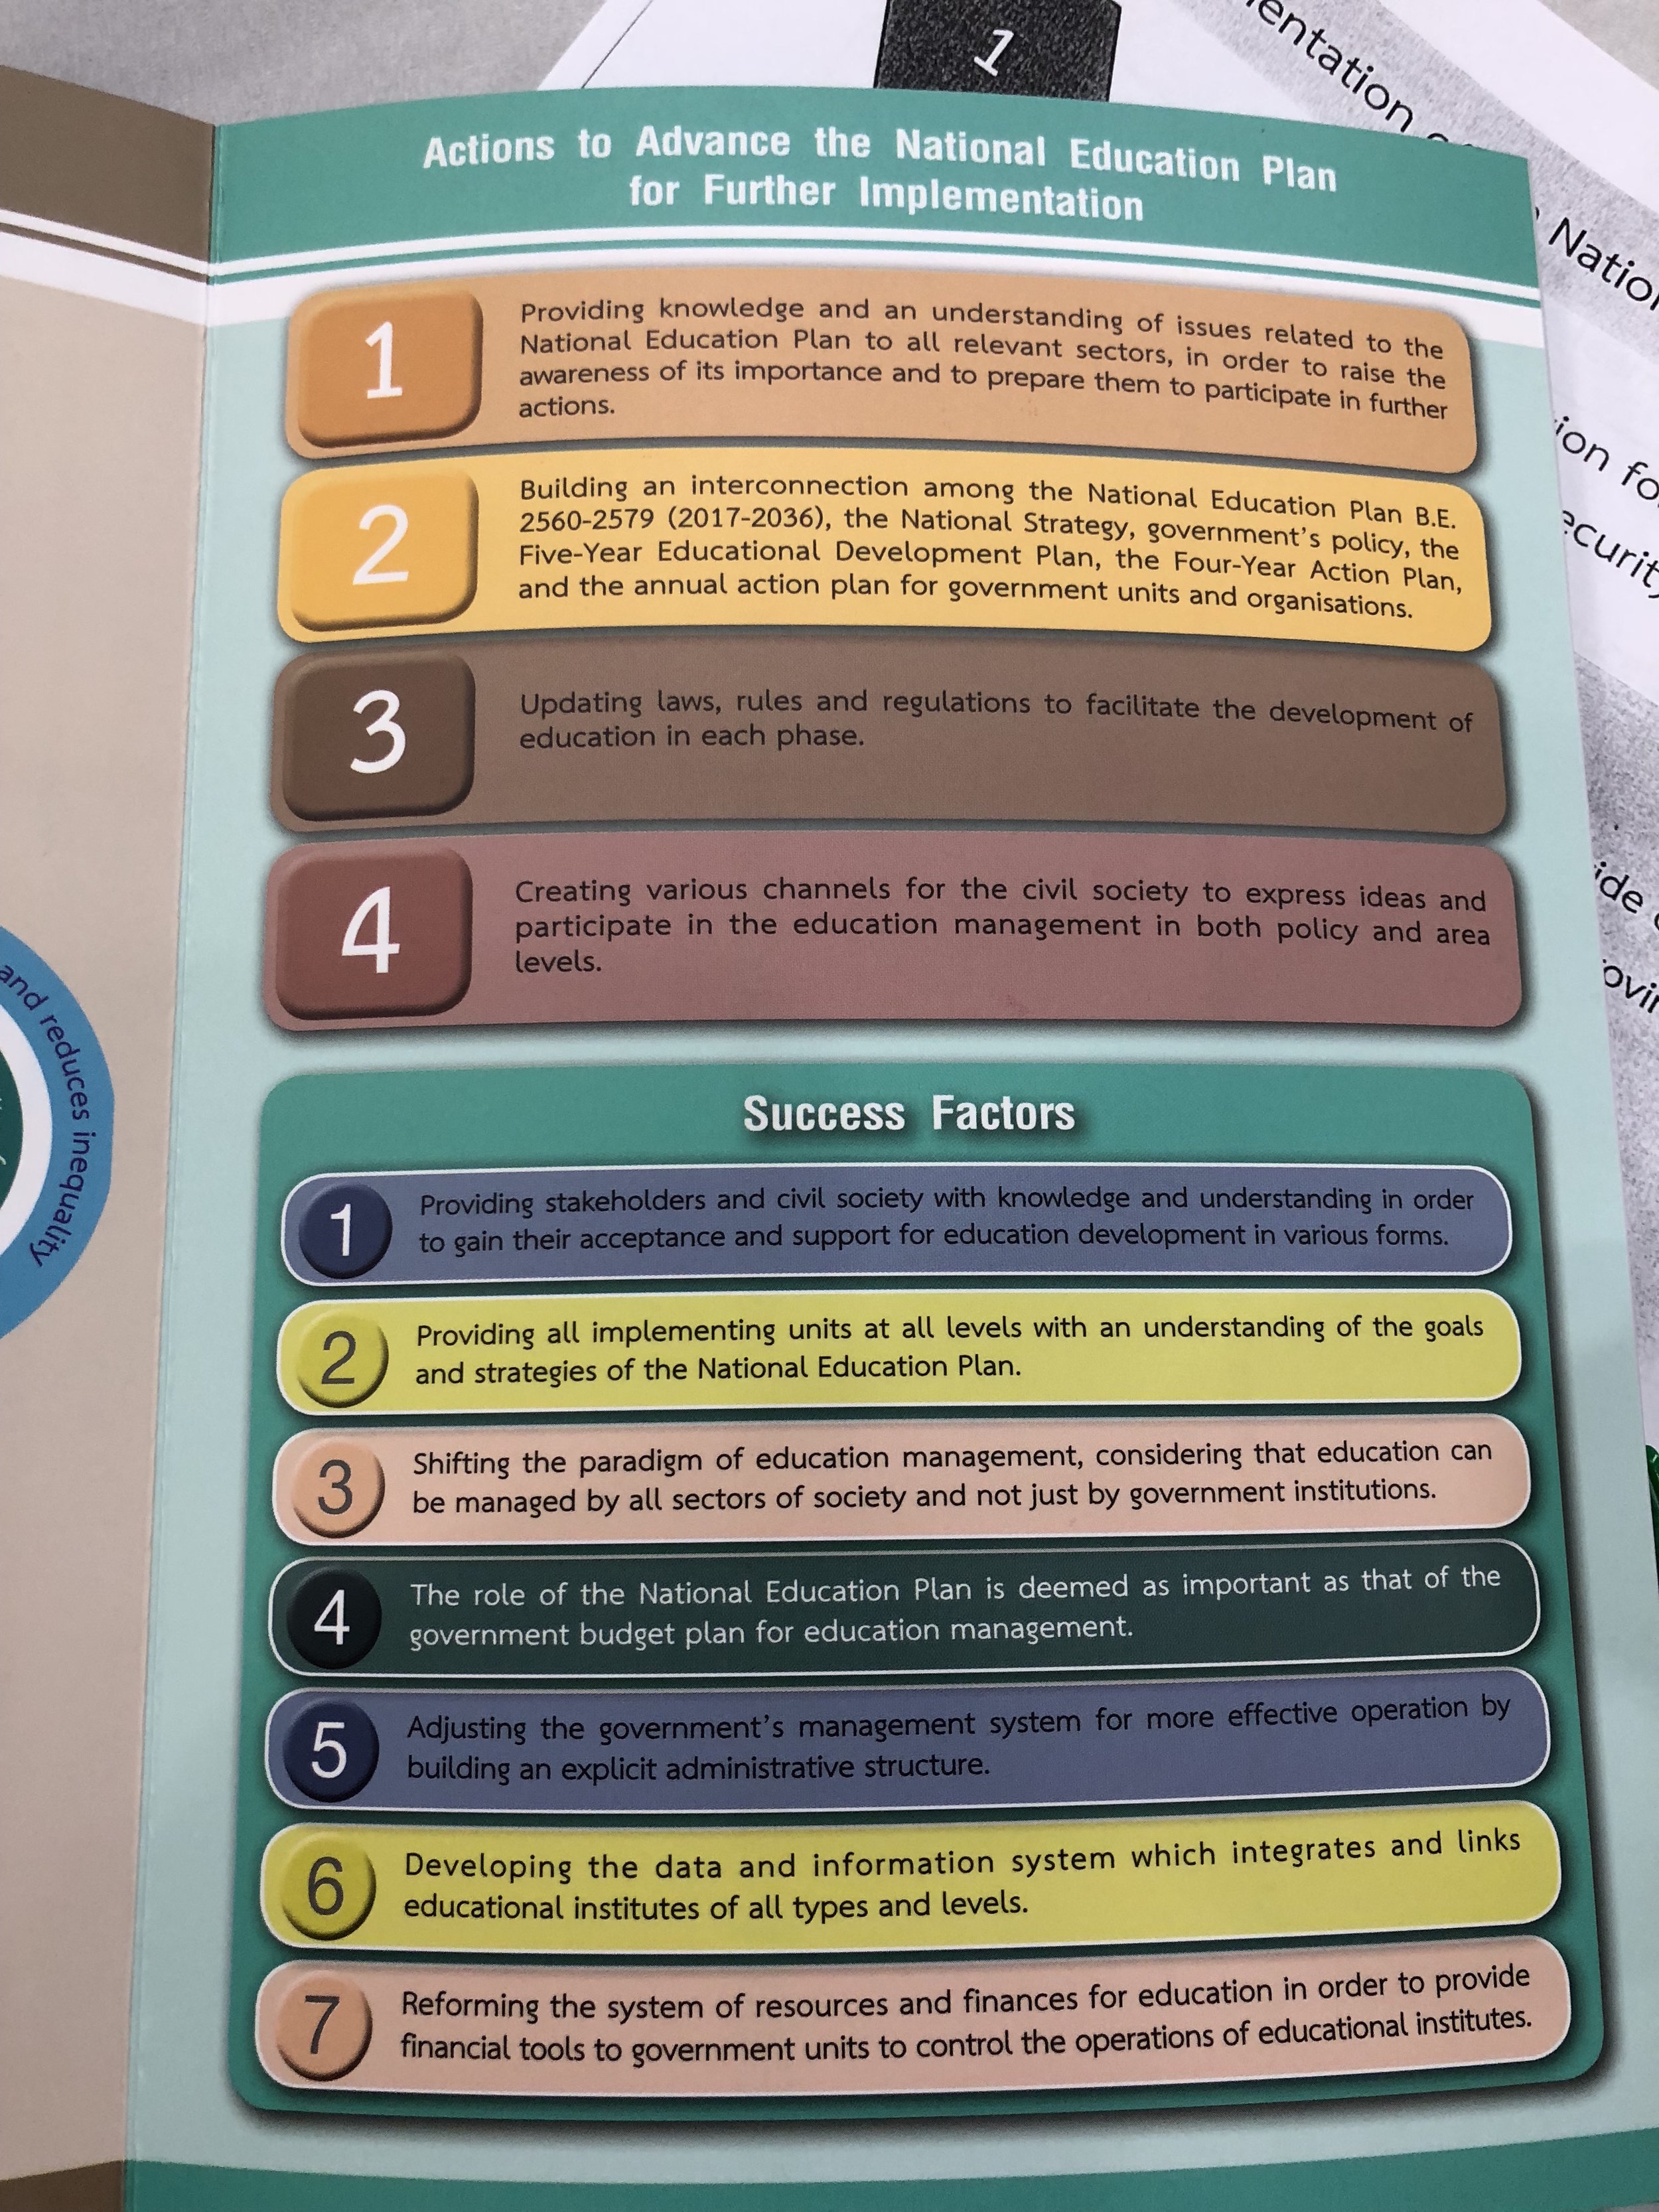 Actions and success factors identified by OEC to achieve Thailand's National Education Plan.